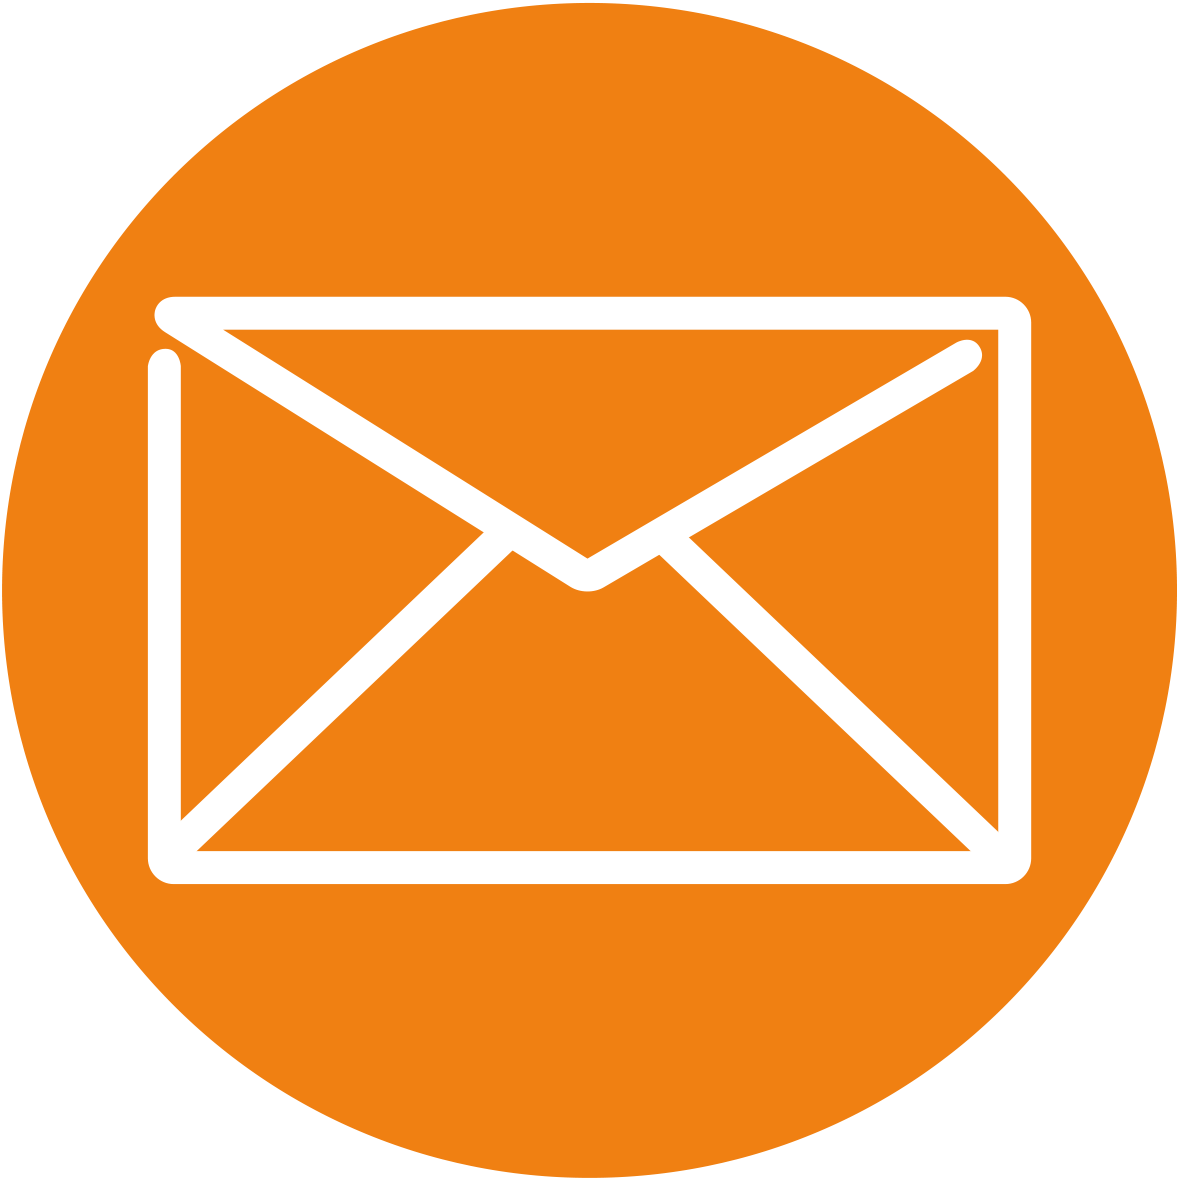 Email (orange).png